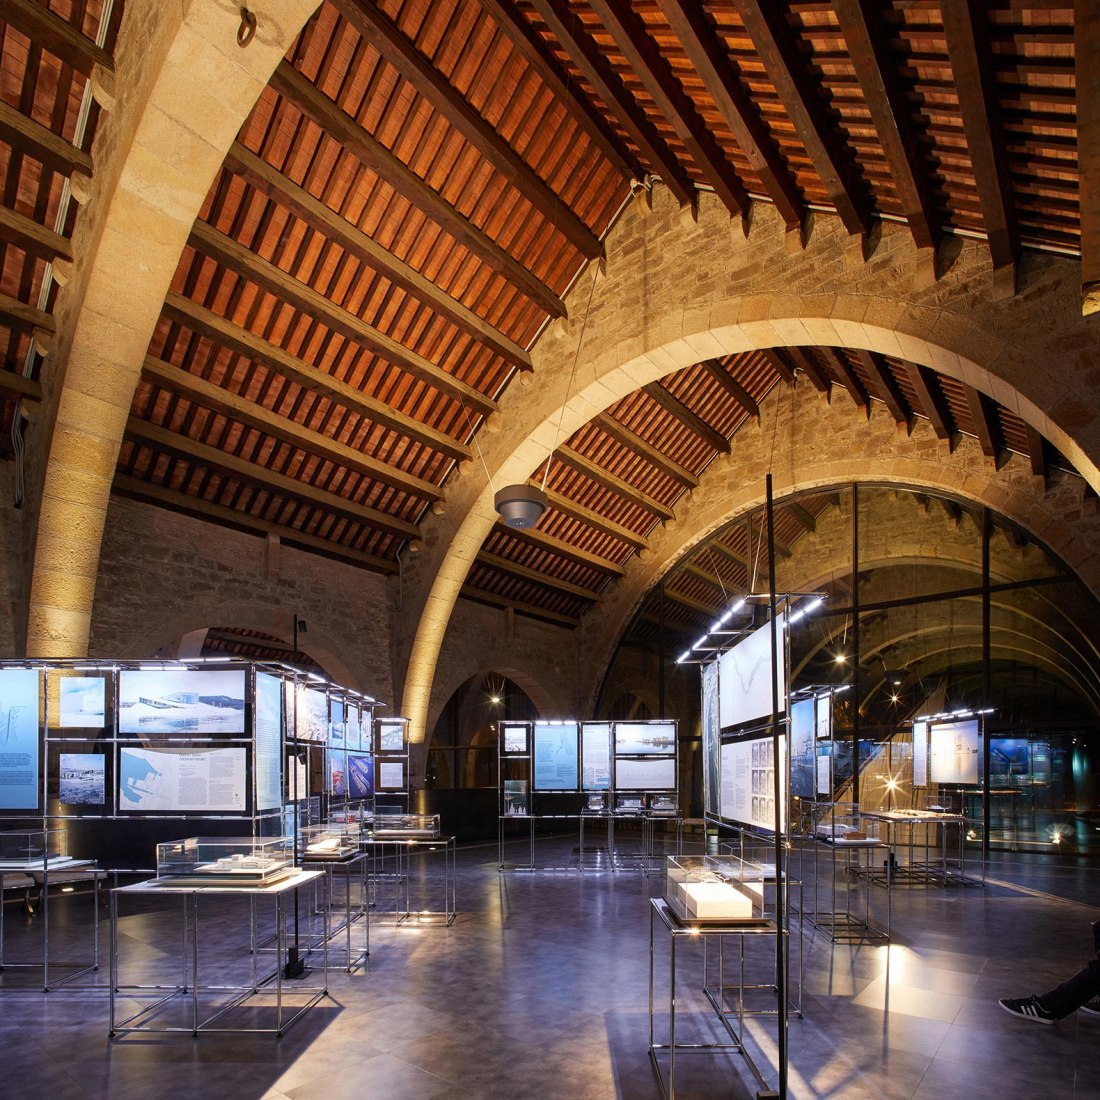 Architectures on the Waterfront, exhibition. Photograph by Pepo Segura, courtesy of Fundació Mies van der Rohe